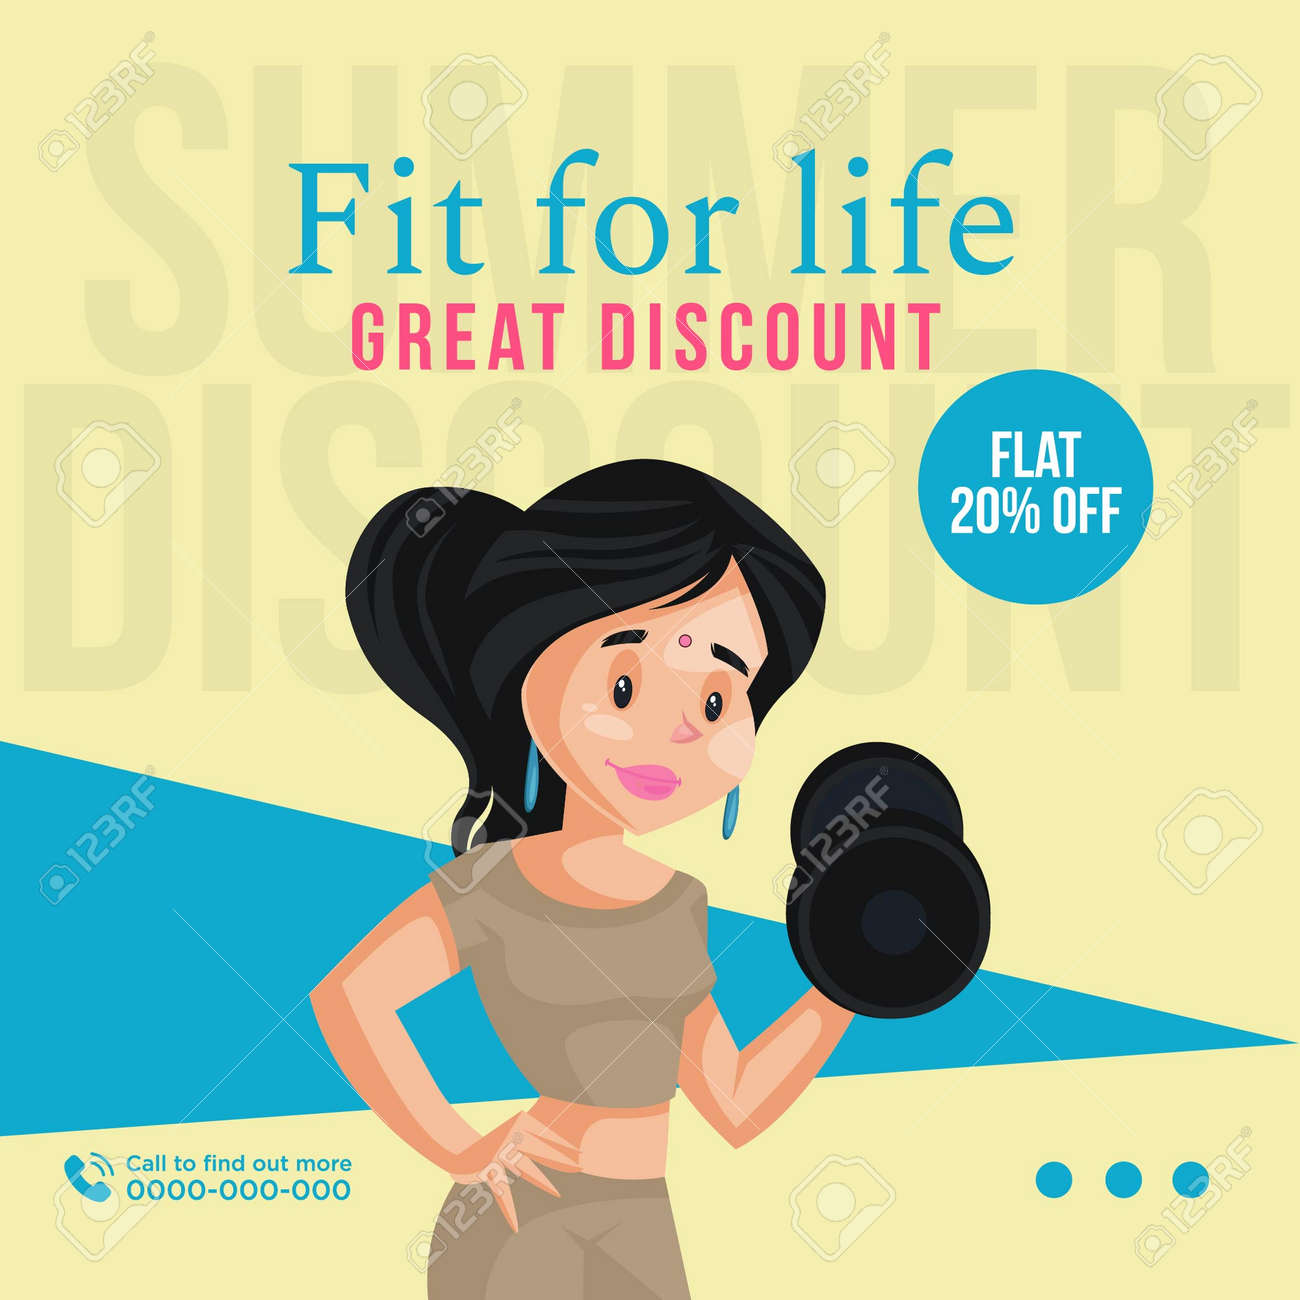 Banner design of fit for life great discount template. Vector graphic illustration. - 171677488